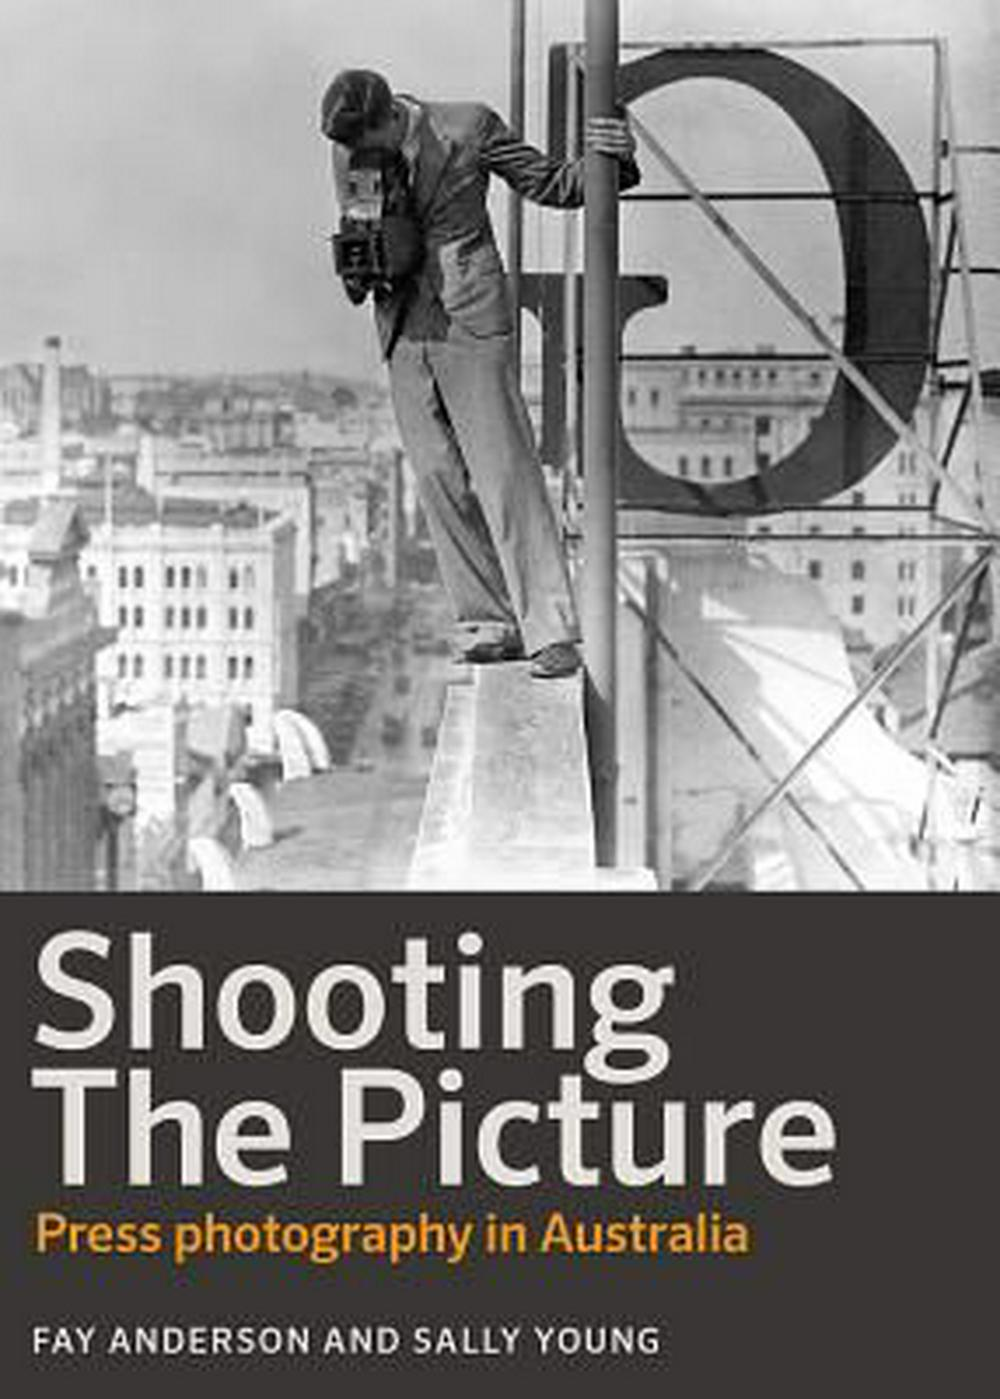 Shooting the Picture: Press photography in Australia